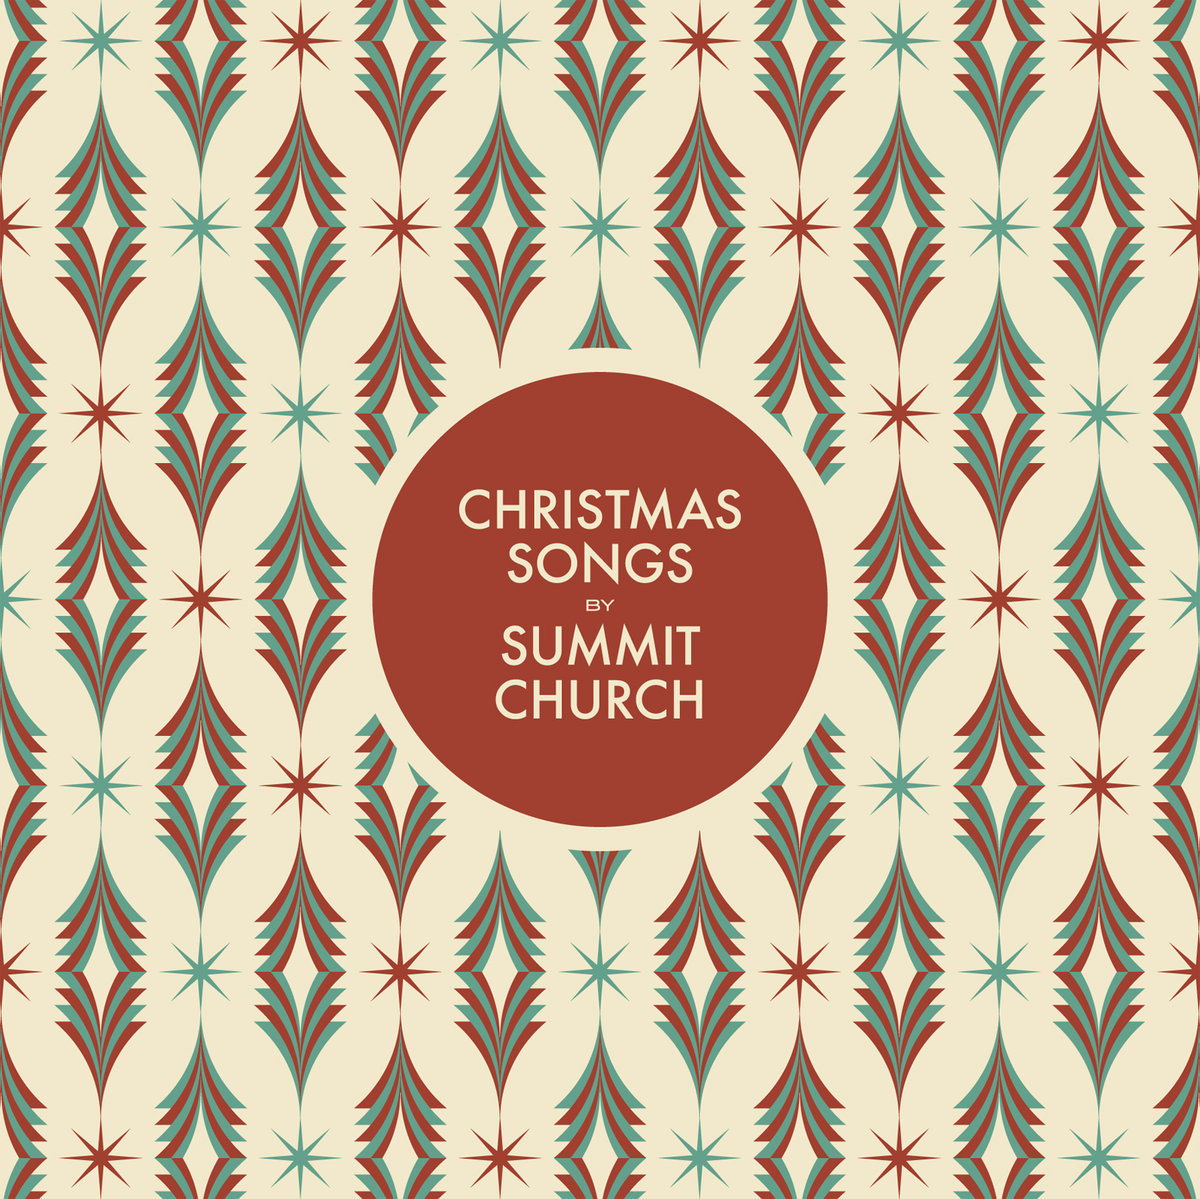 christmas songs by summit church - Christmas Songs For Church